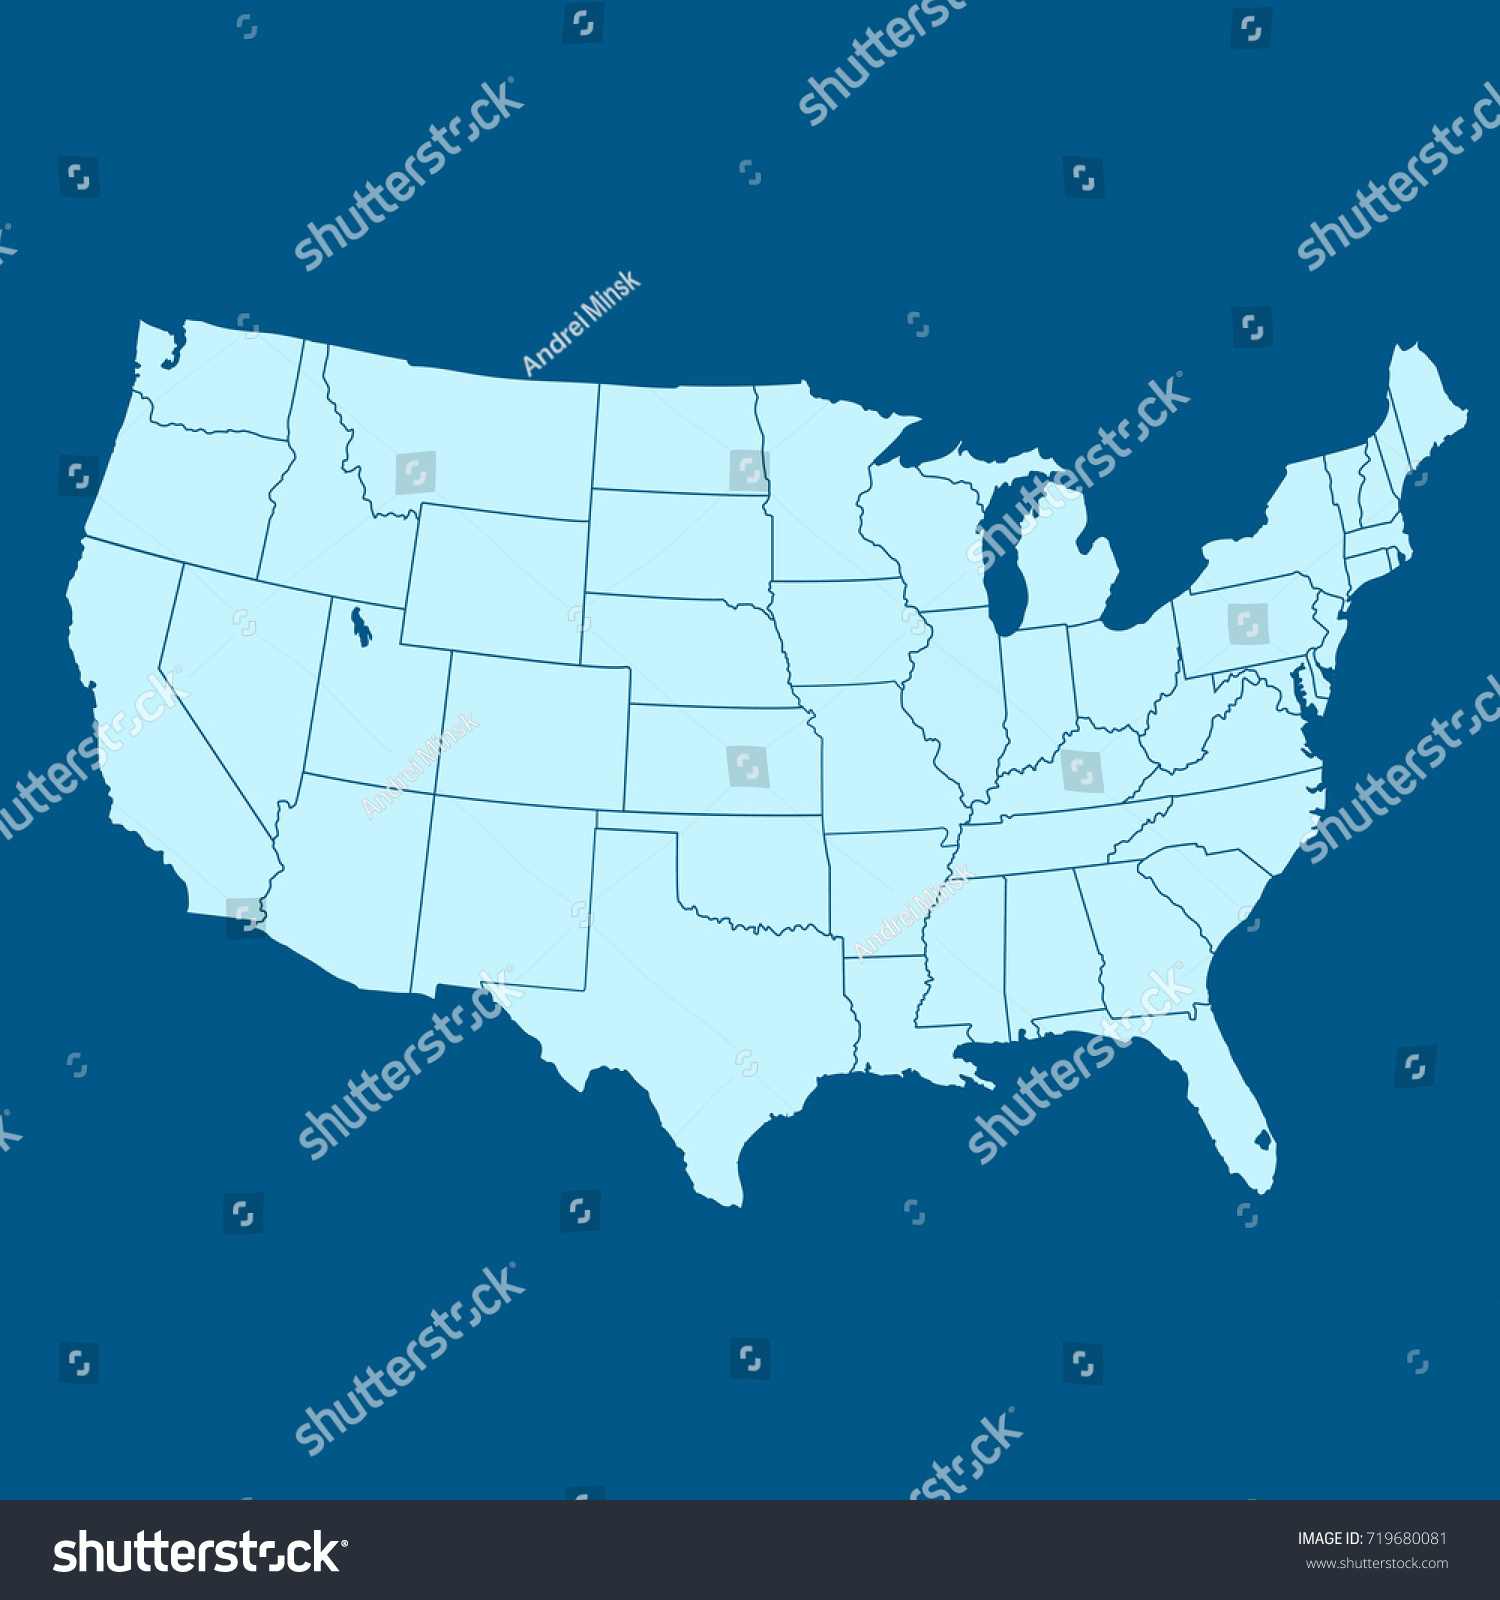 Map Of The United States Of America Minecraft Star Wars Map - The united states of america map